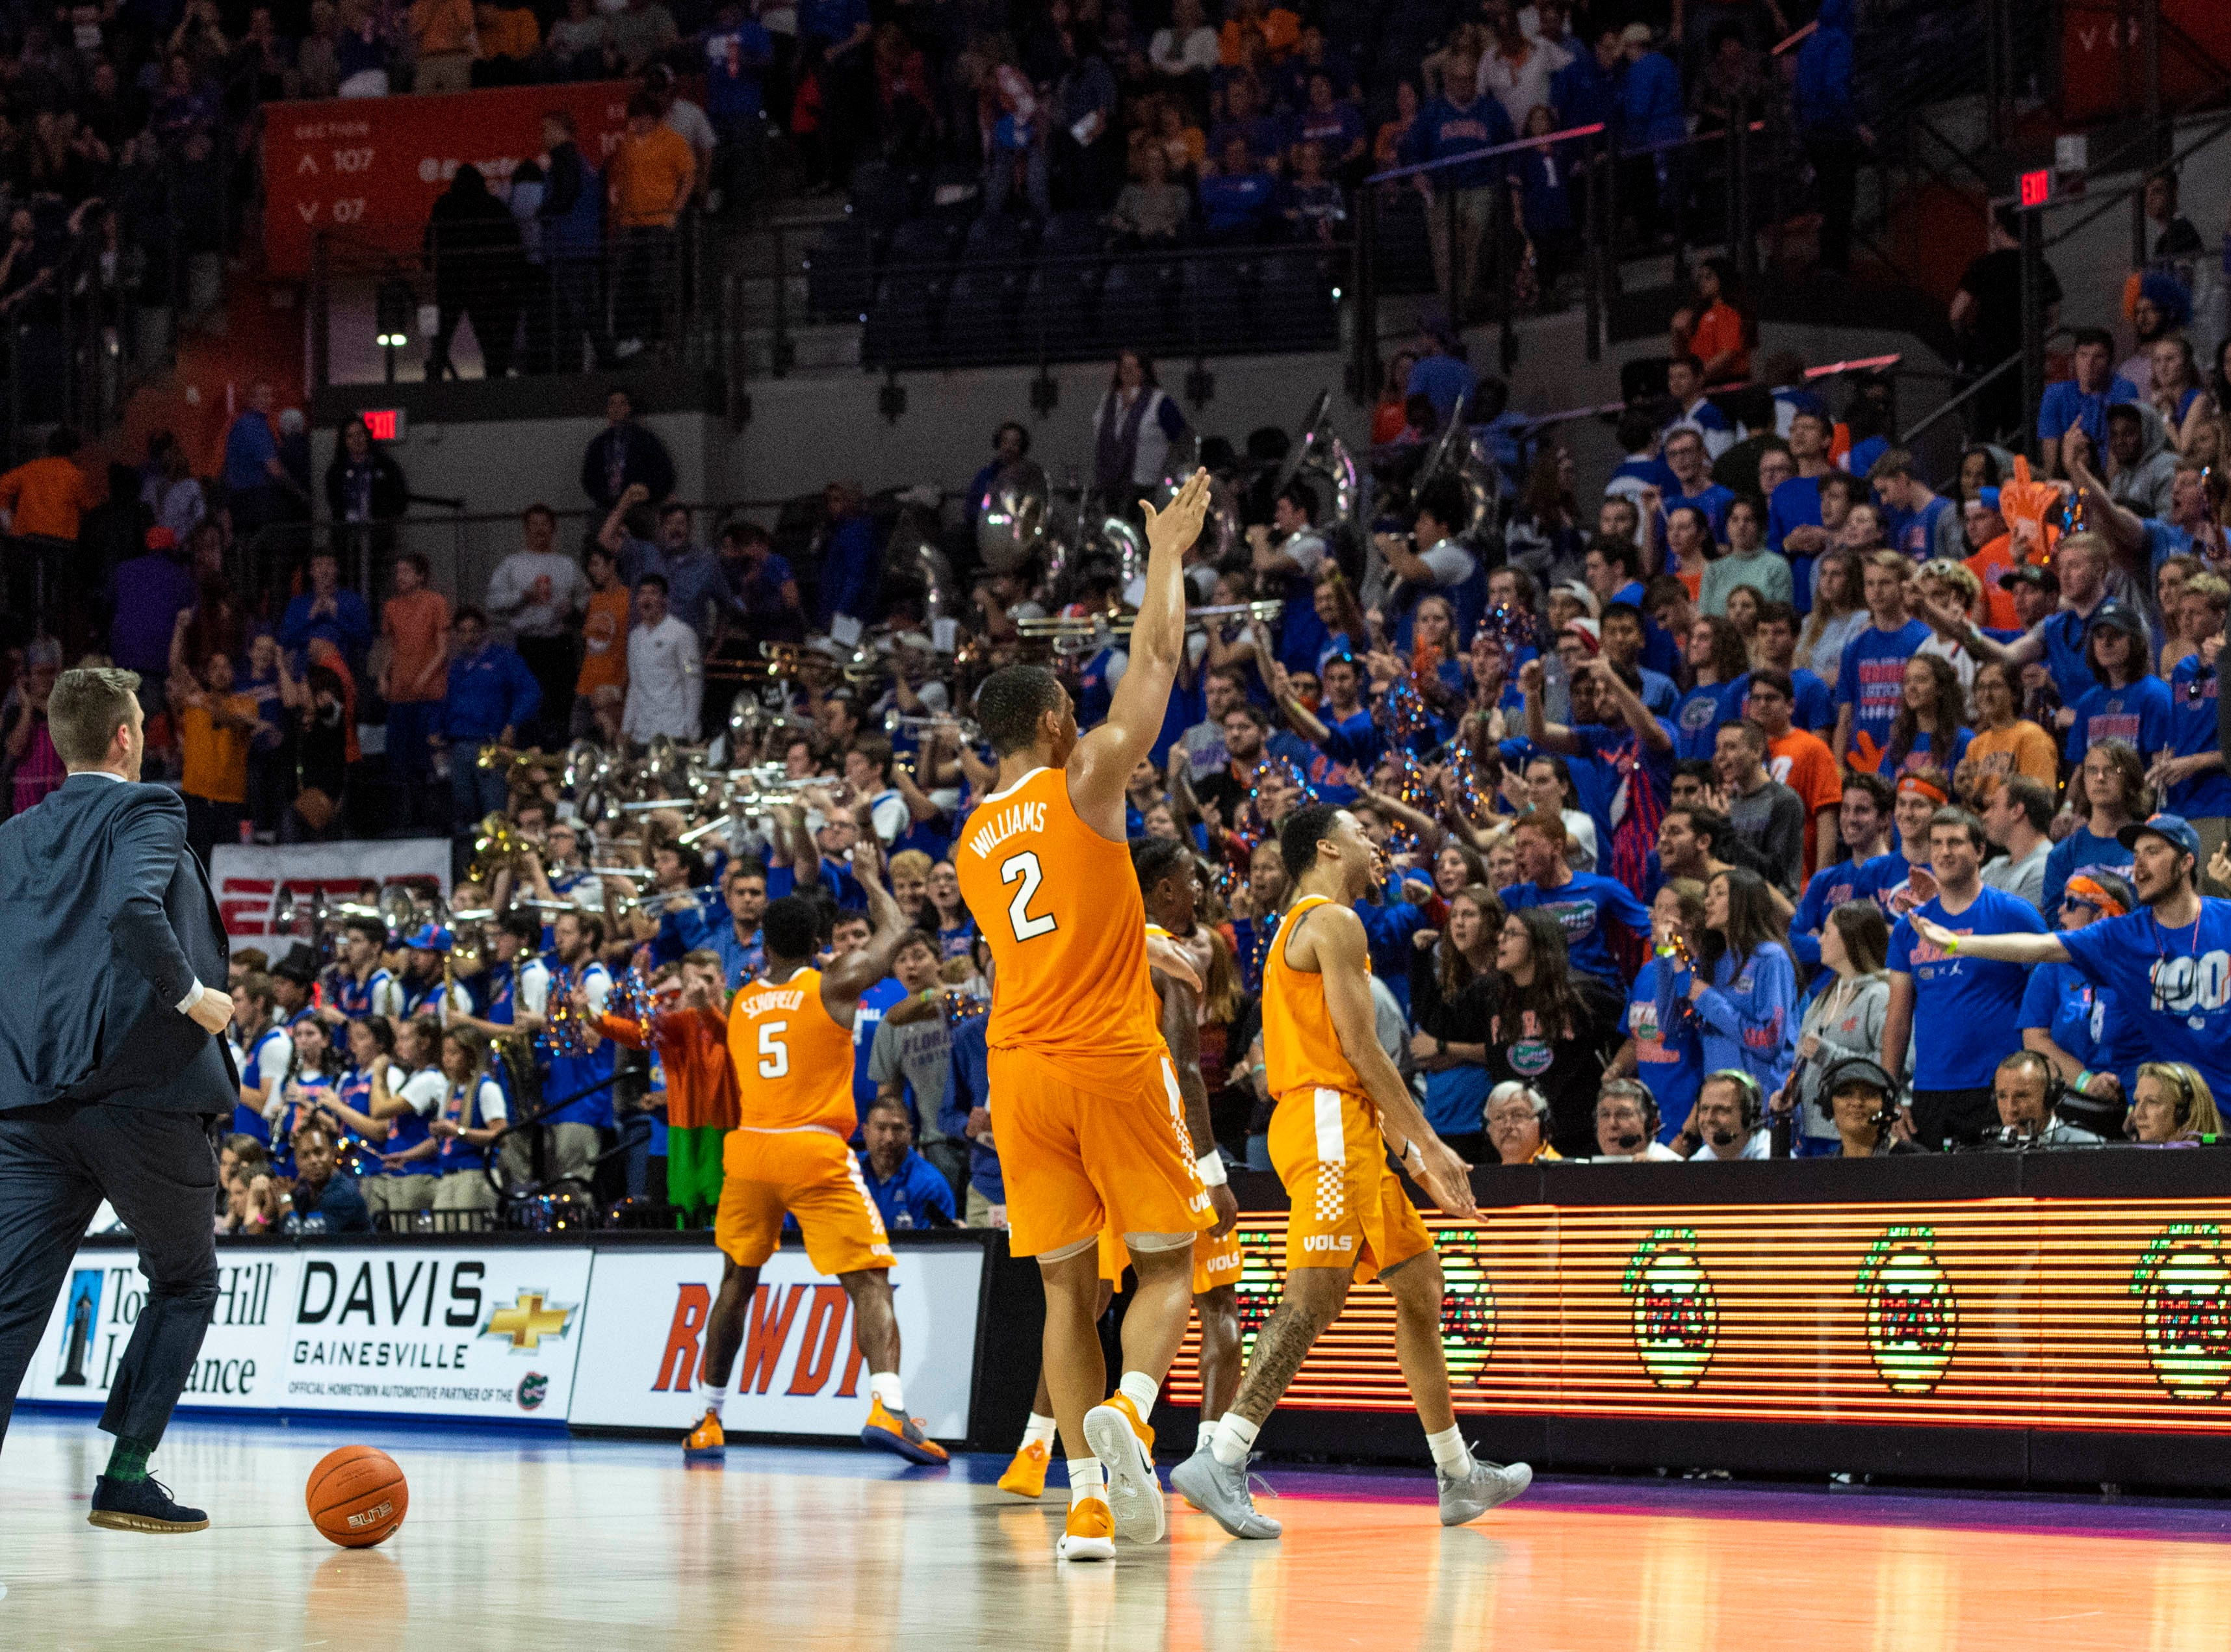 Tennessee Volunteers forward Grant Williams (2) and guard Admiral Schofield (5) taunt the fans with the Gator chomp after winning the game against the Florida Gators at Exactech Arena on Jan. 12, 2019.